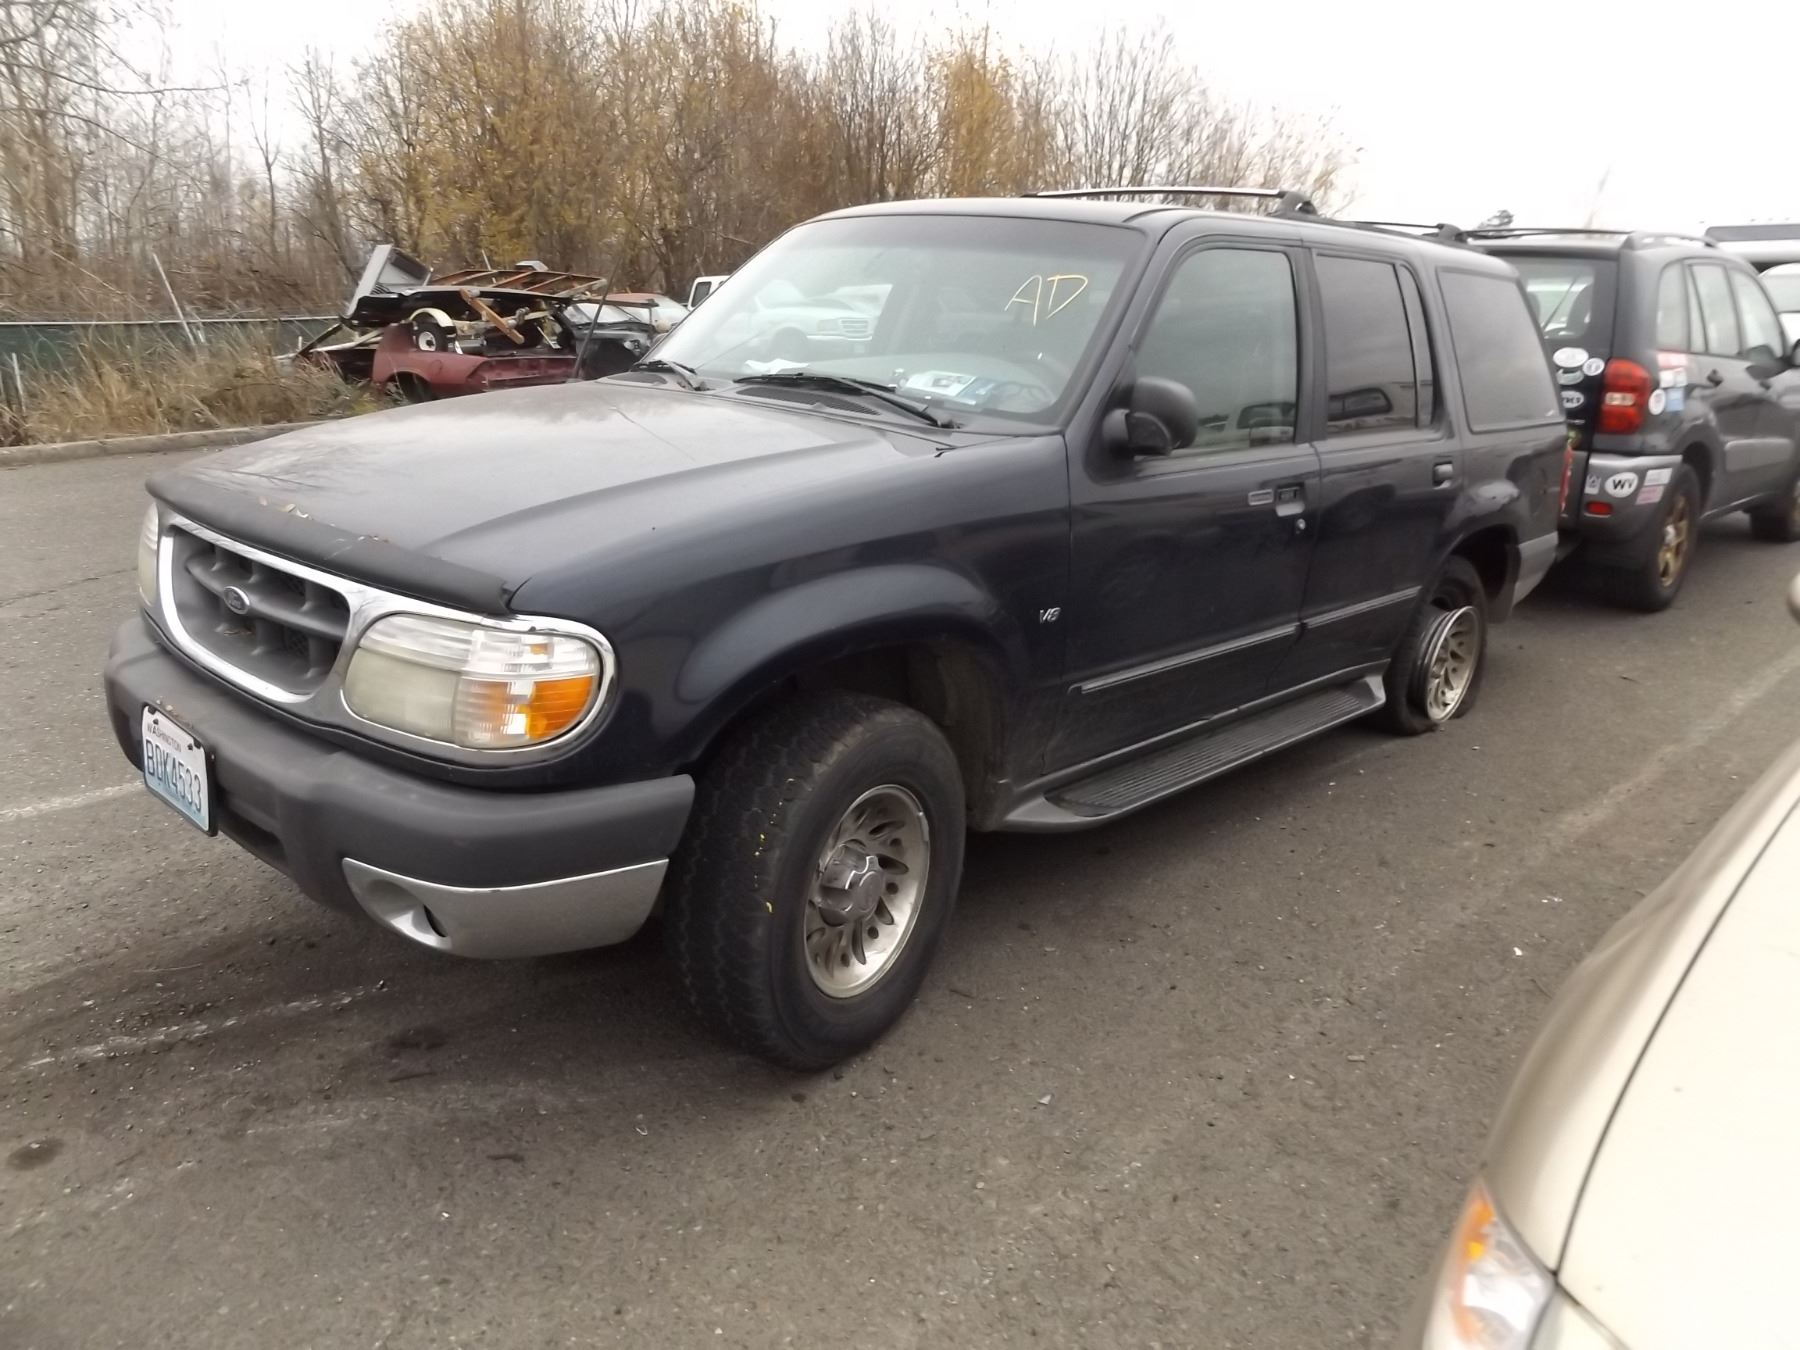 small resolution of image 1 1999 ford explorer